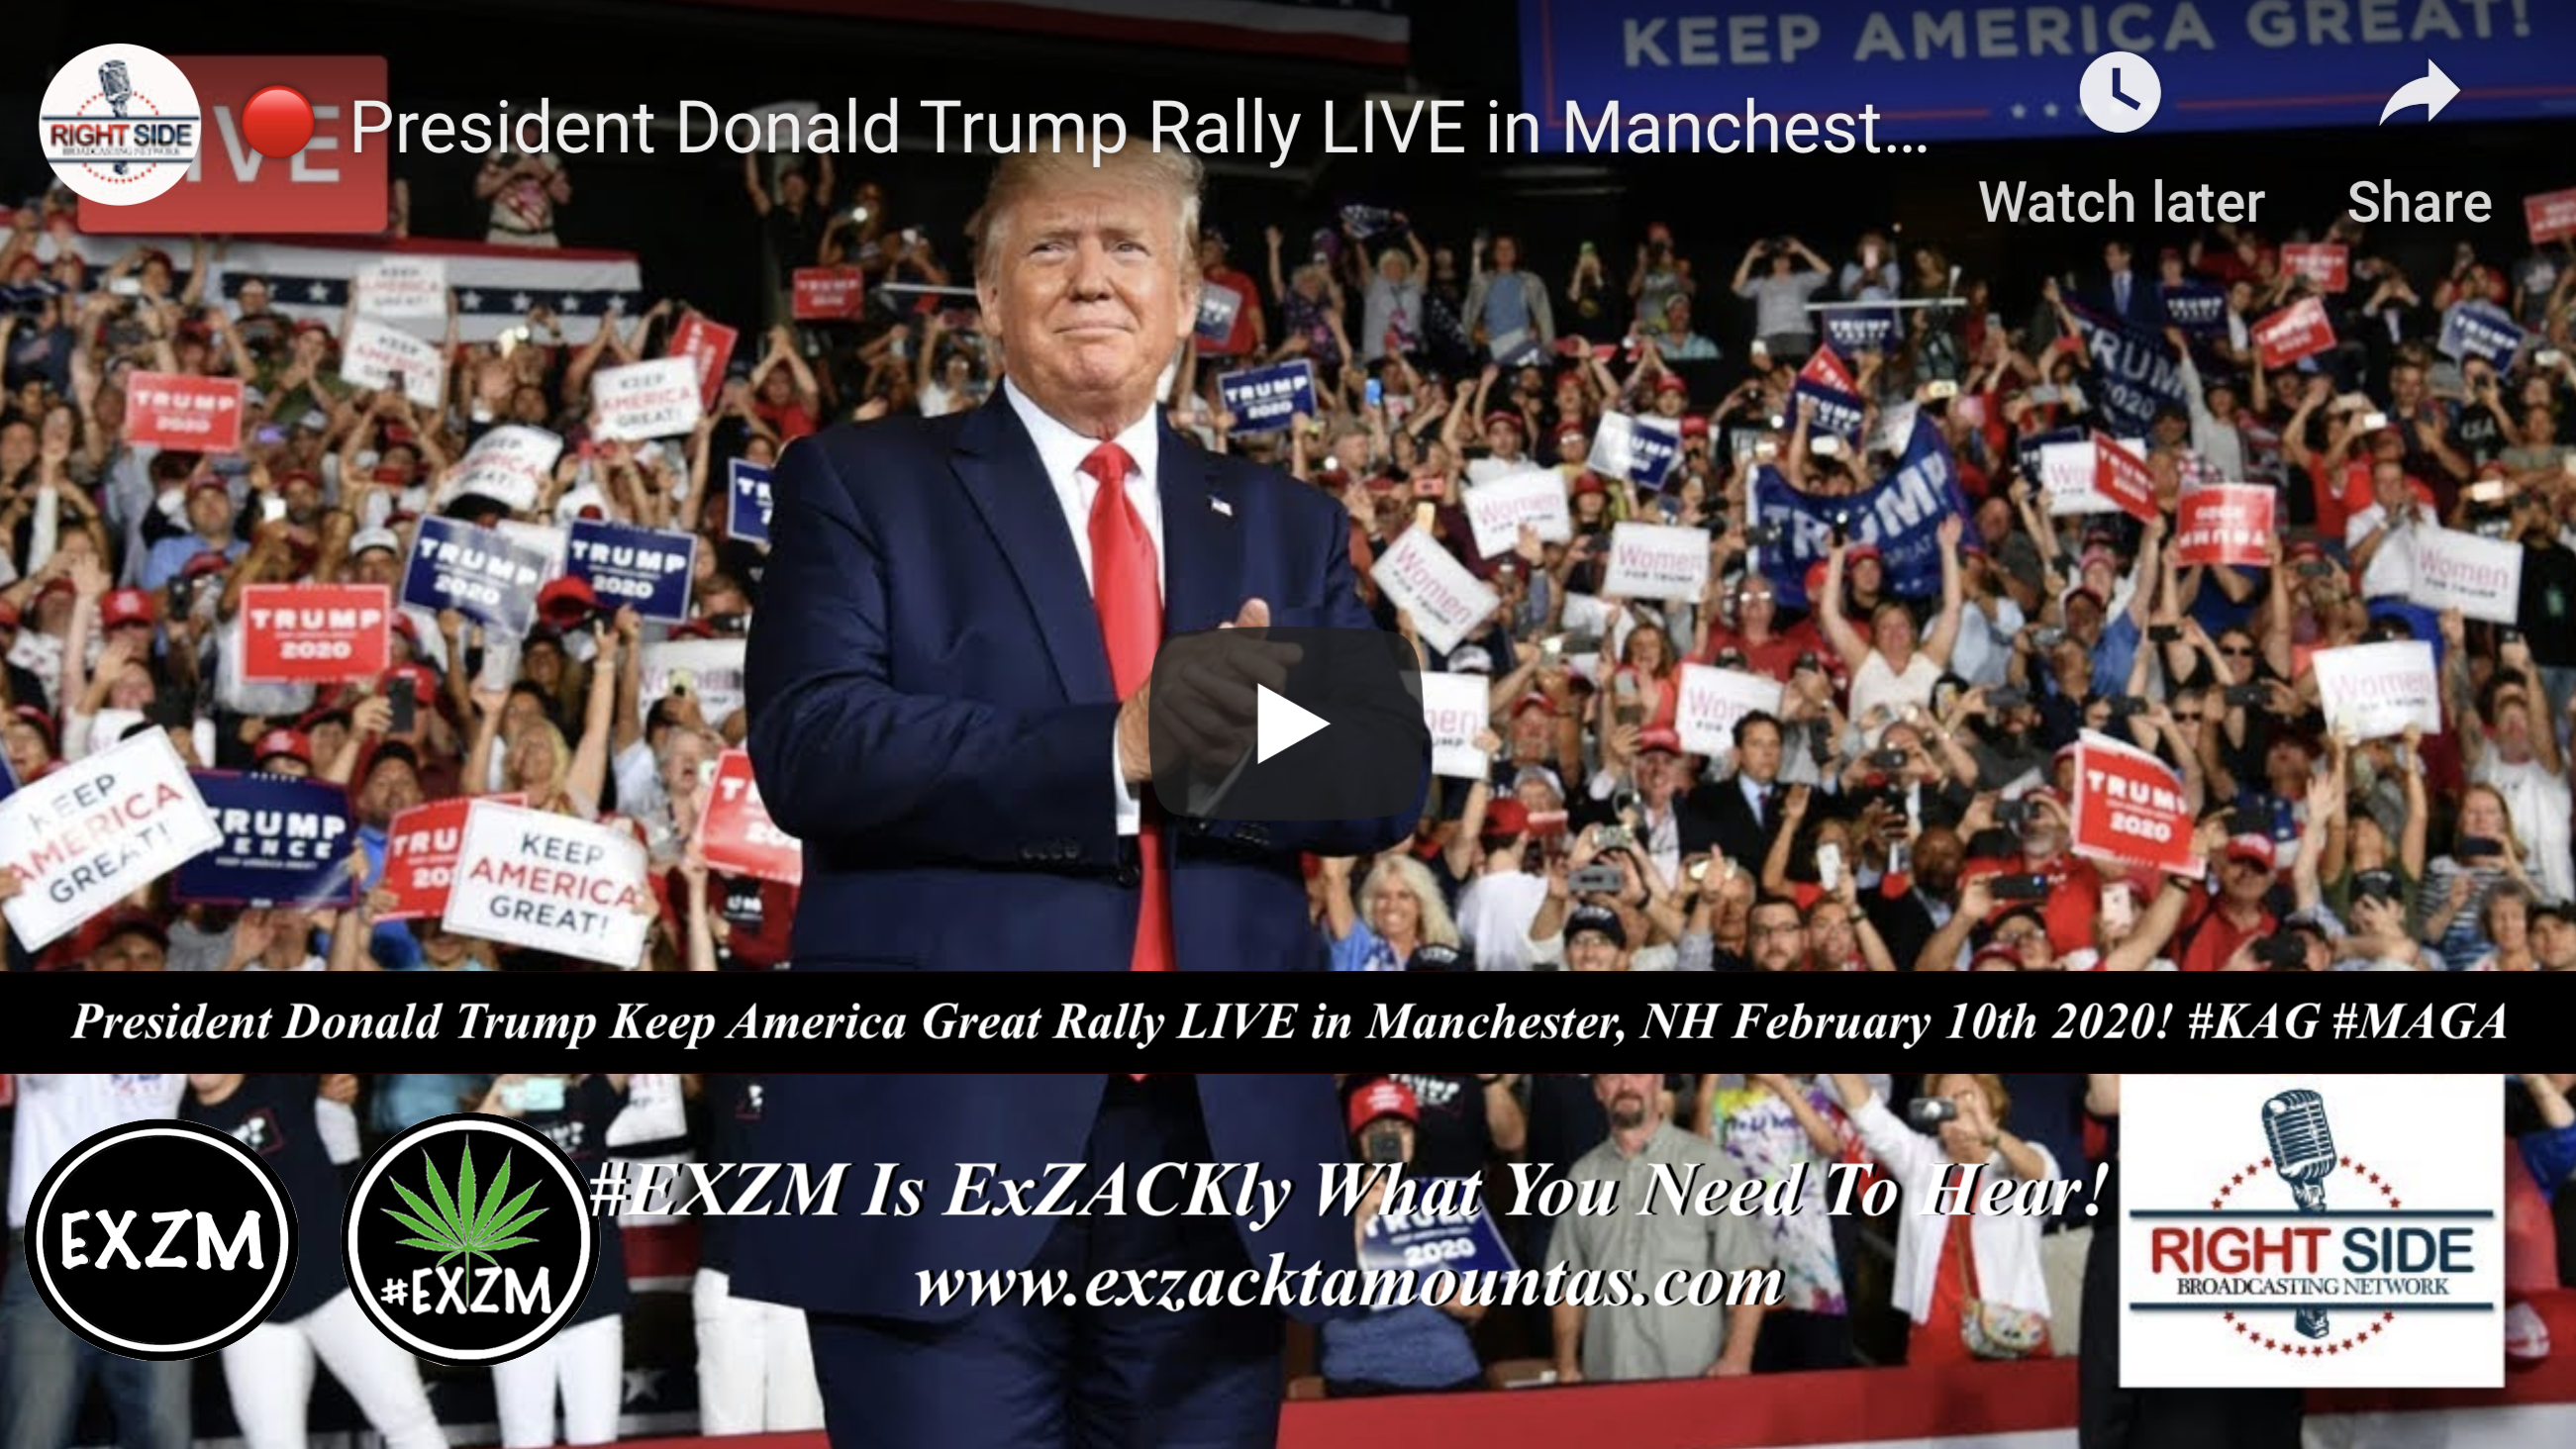 Donald Trump KAG MAGA Manchester New Hampshire 2 10 2020